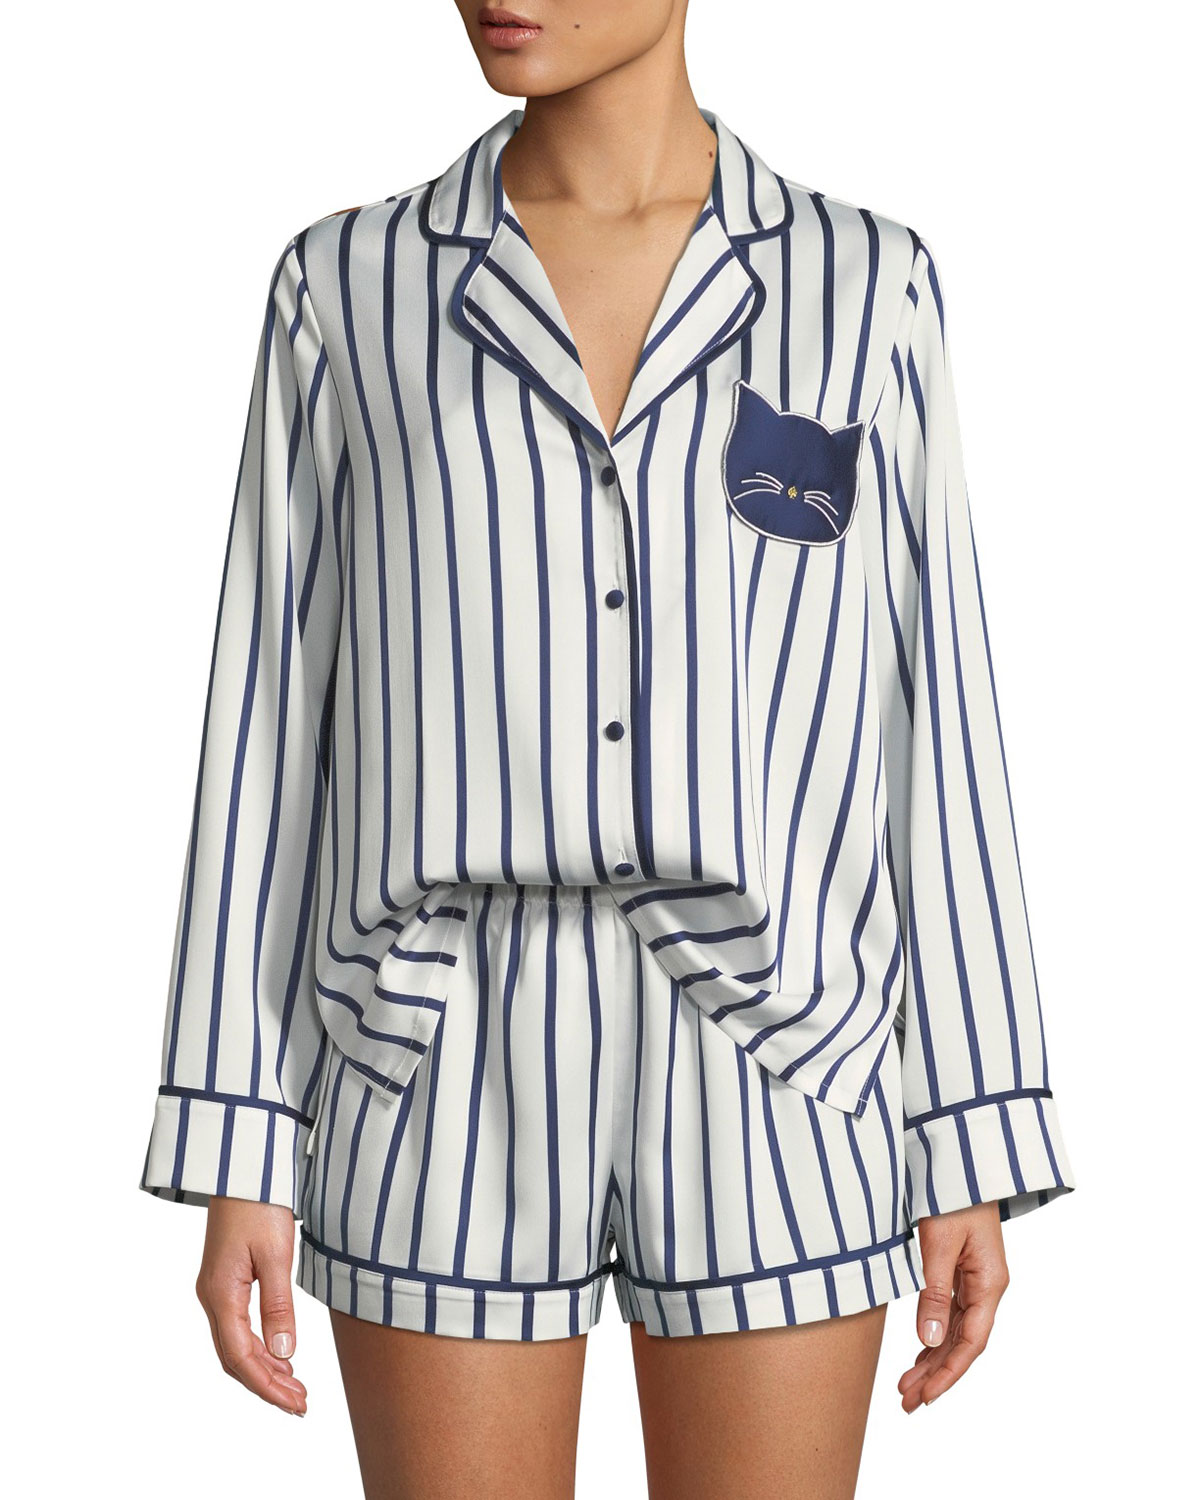 striped short pajama set with cat face